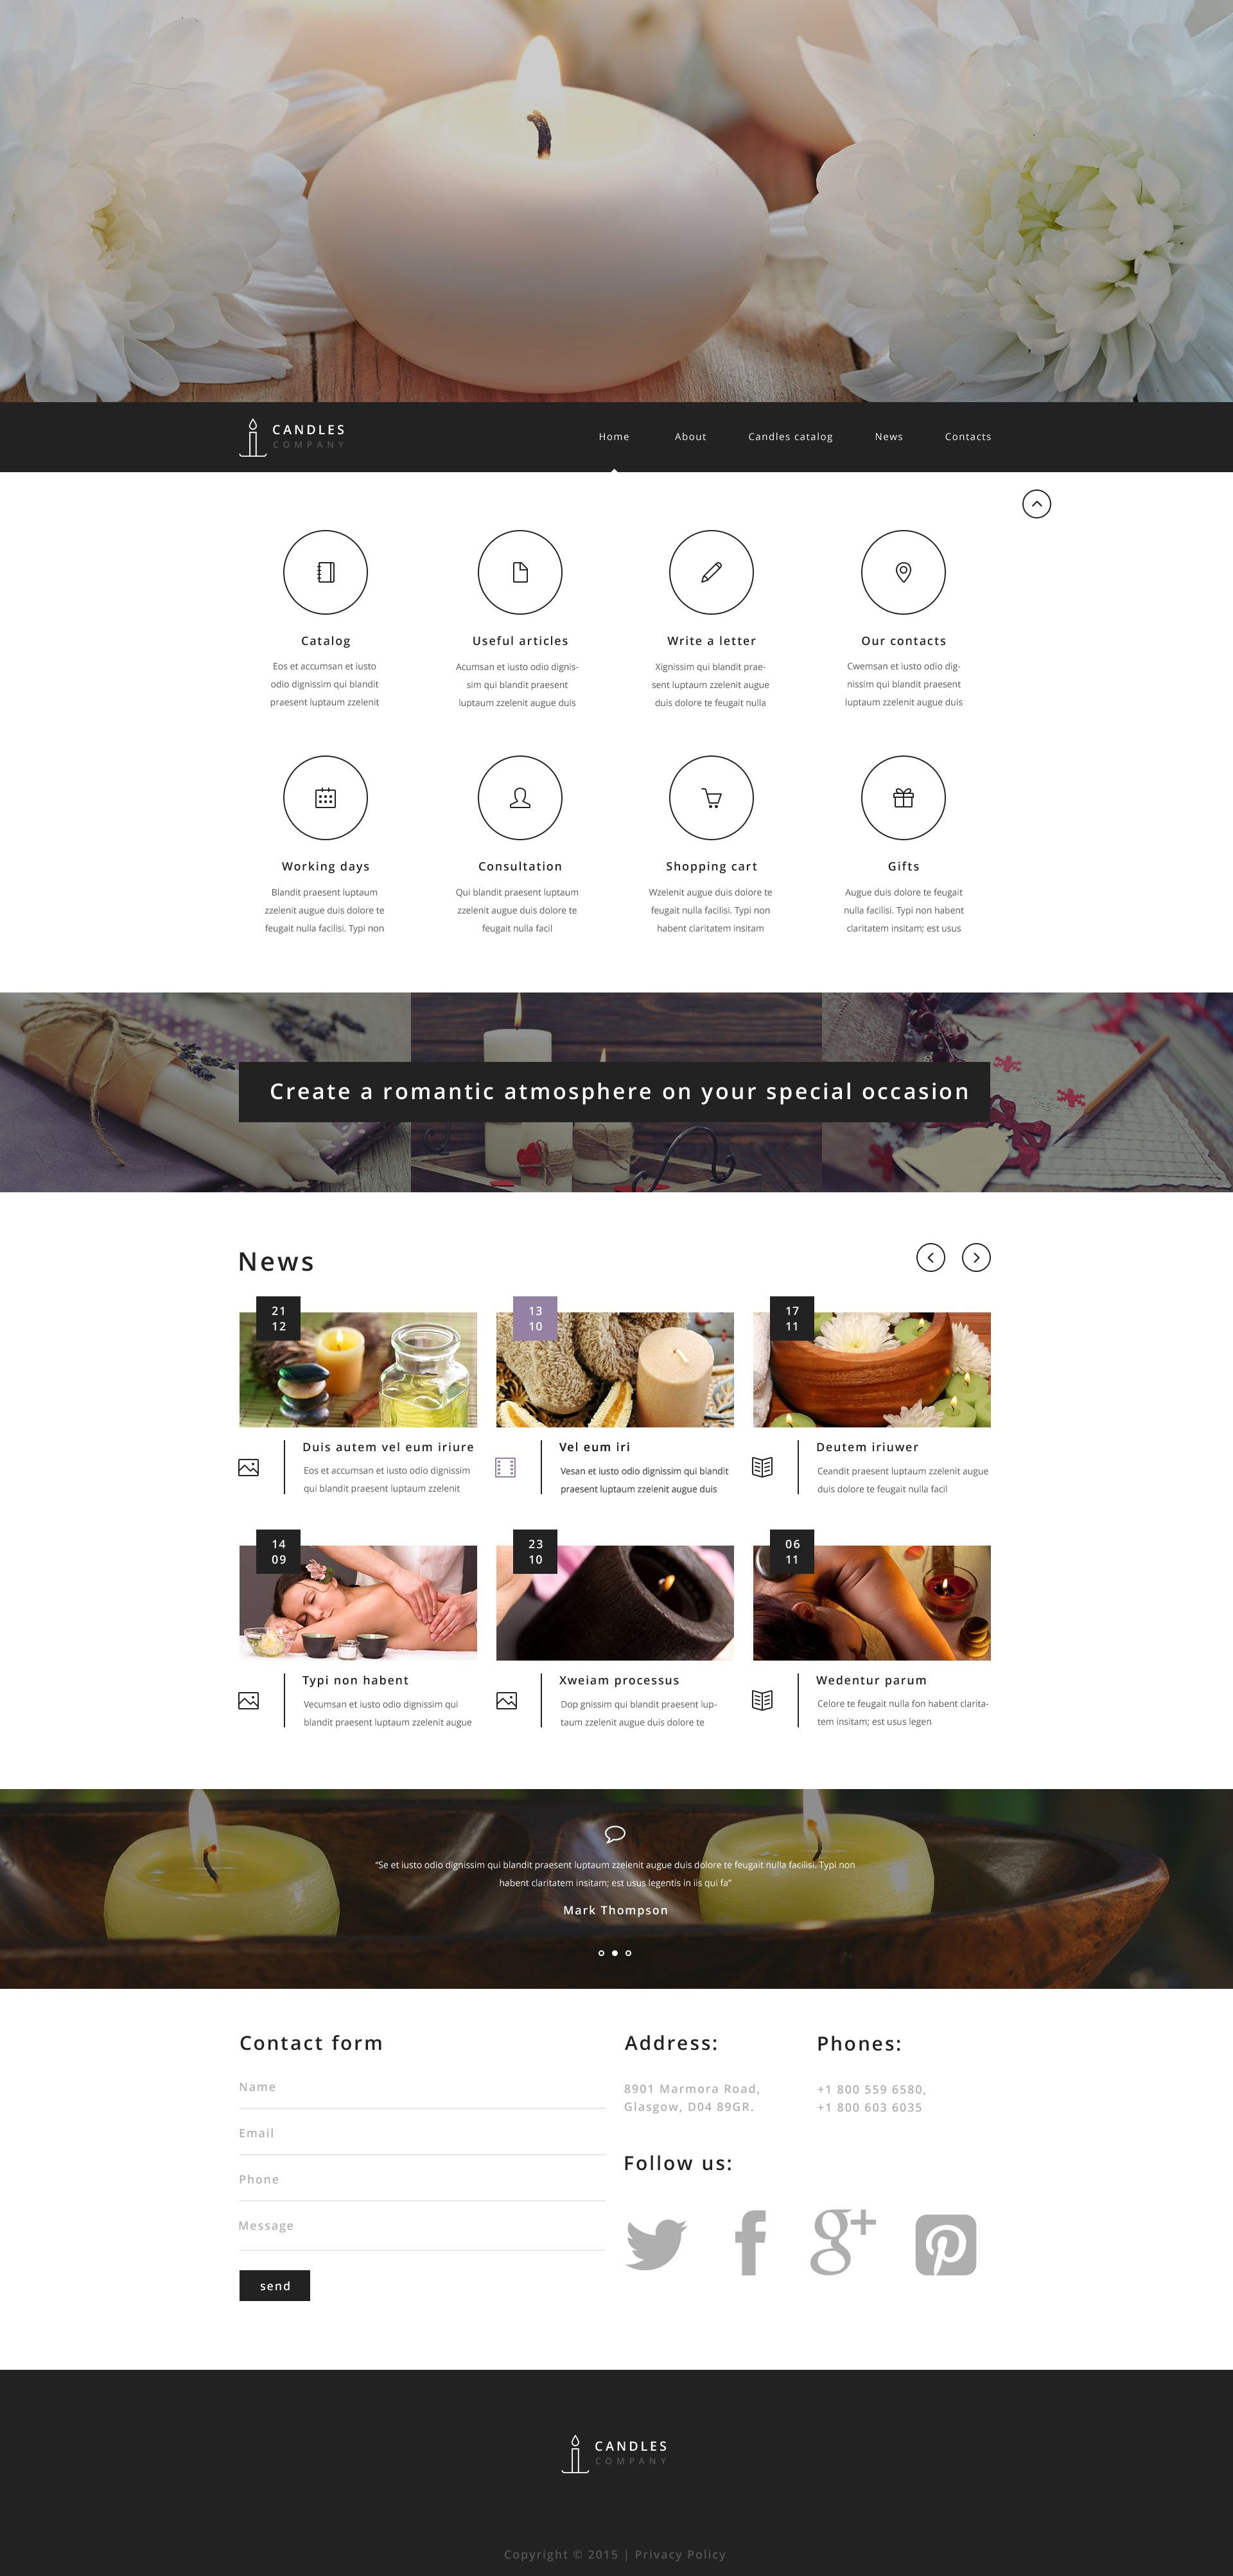 The Handmade Candles Store Responsive Javascript Animated Design 53904, one of the best website templates of its kind (most popular, hobbies & crafts), also known as Handmade Candles store website template, shop website template, candle website template, holders website template, unscented website template, floating website template, scented website template, jar website template, rechargeable website template, pillar website template, soy website template, taper website template, tea website template, light website template, unique  votive and related with Handmade Candles store, shop, candle, holders, unscented, floating, scented, jar, rechargeable, pillar, soy, taper, tea, light, unique  votive, etc.